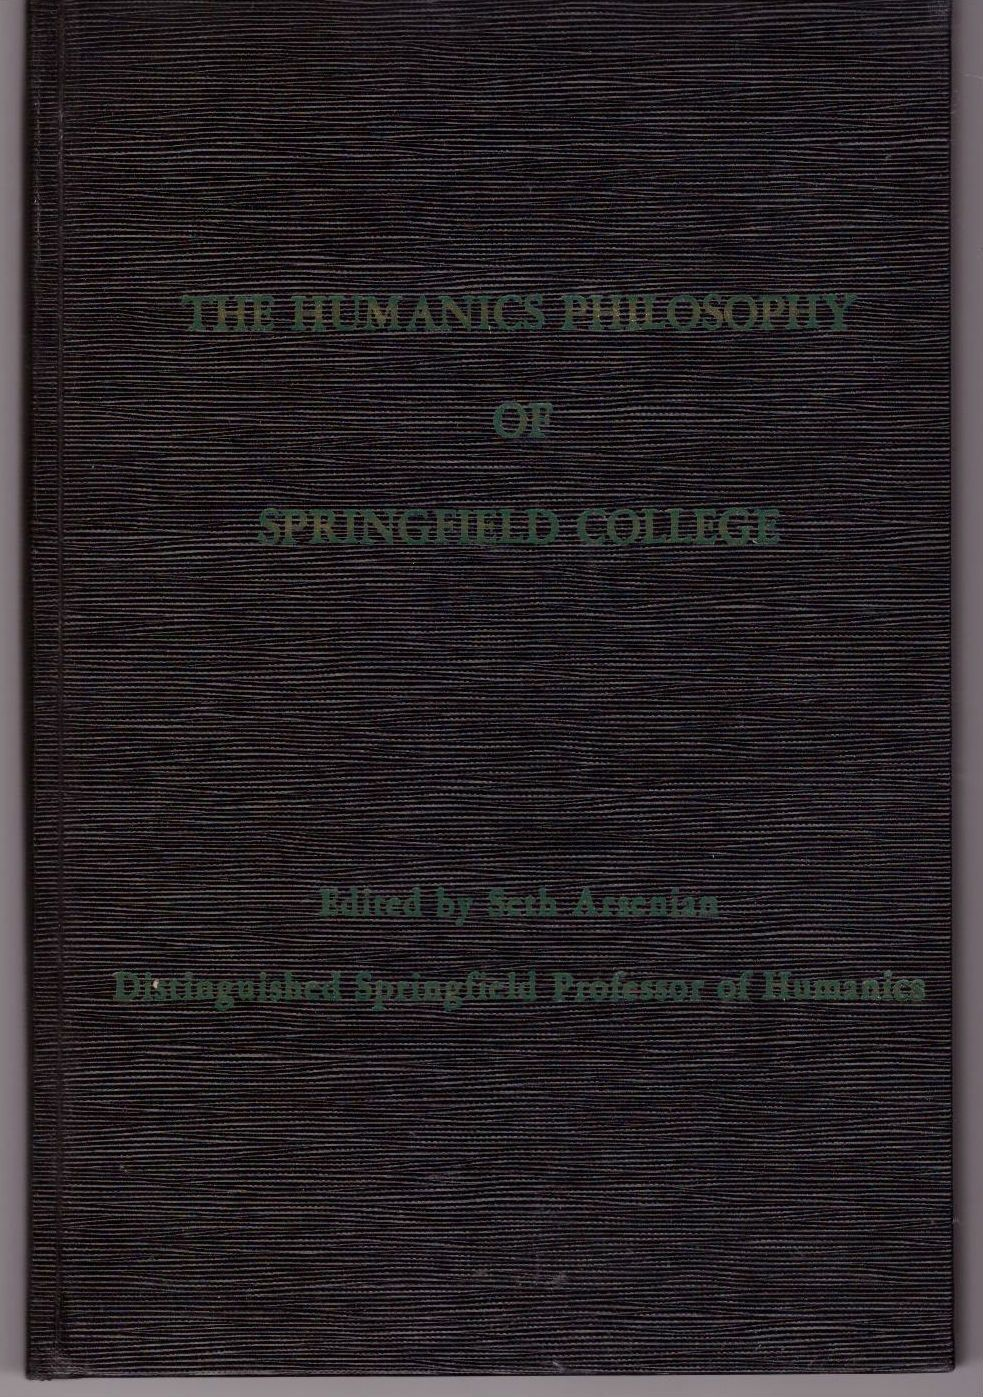 The Humanics Philosophy of Springfield College